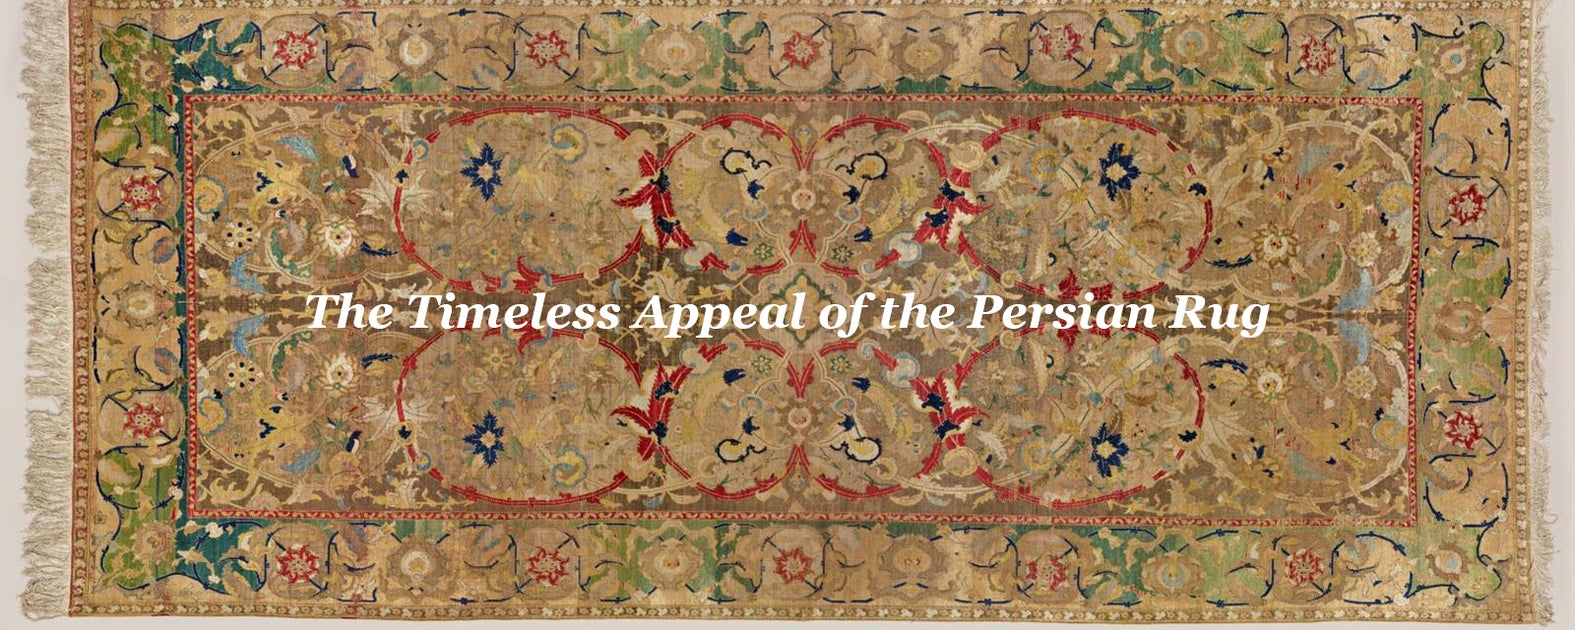 Blog Feature Bbc Designed The Timeless Appeal Of The Persian Rug Main Street Oriental Rugs